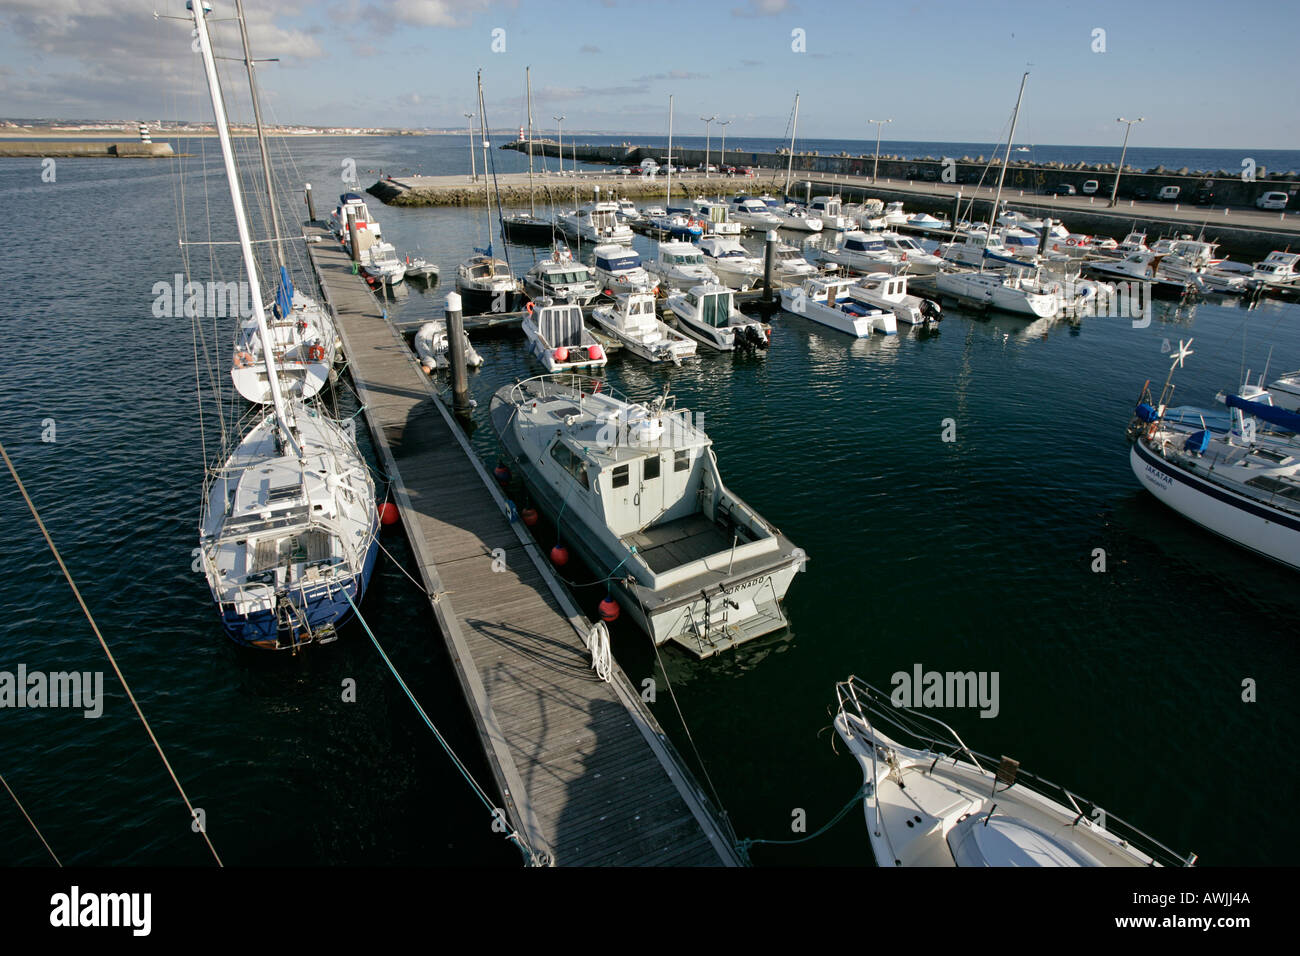 Sailboats and power boats tied up at the pleasure boat marina at Peniche Portugal - Stock Image